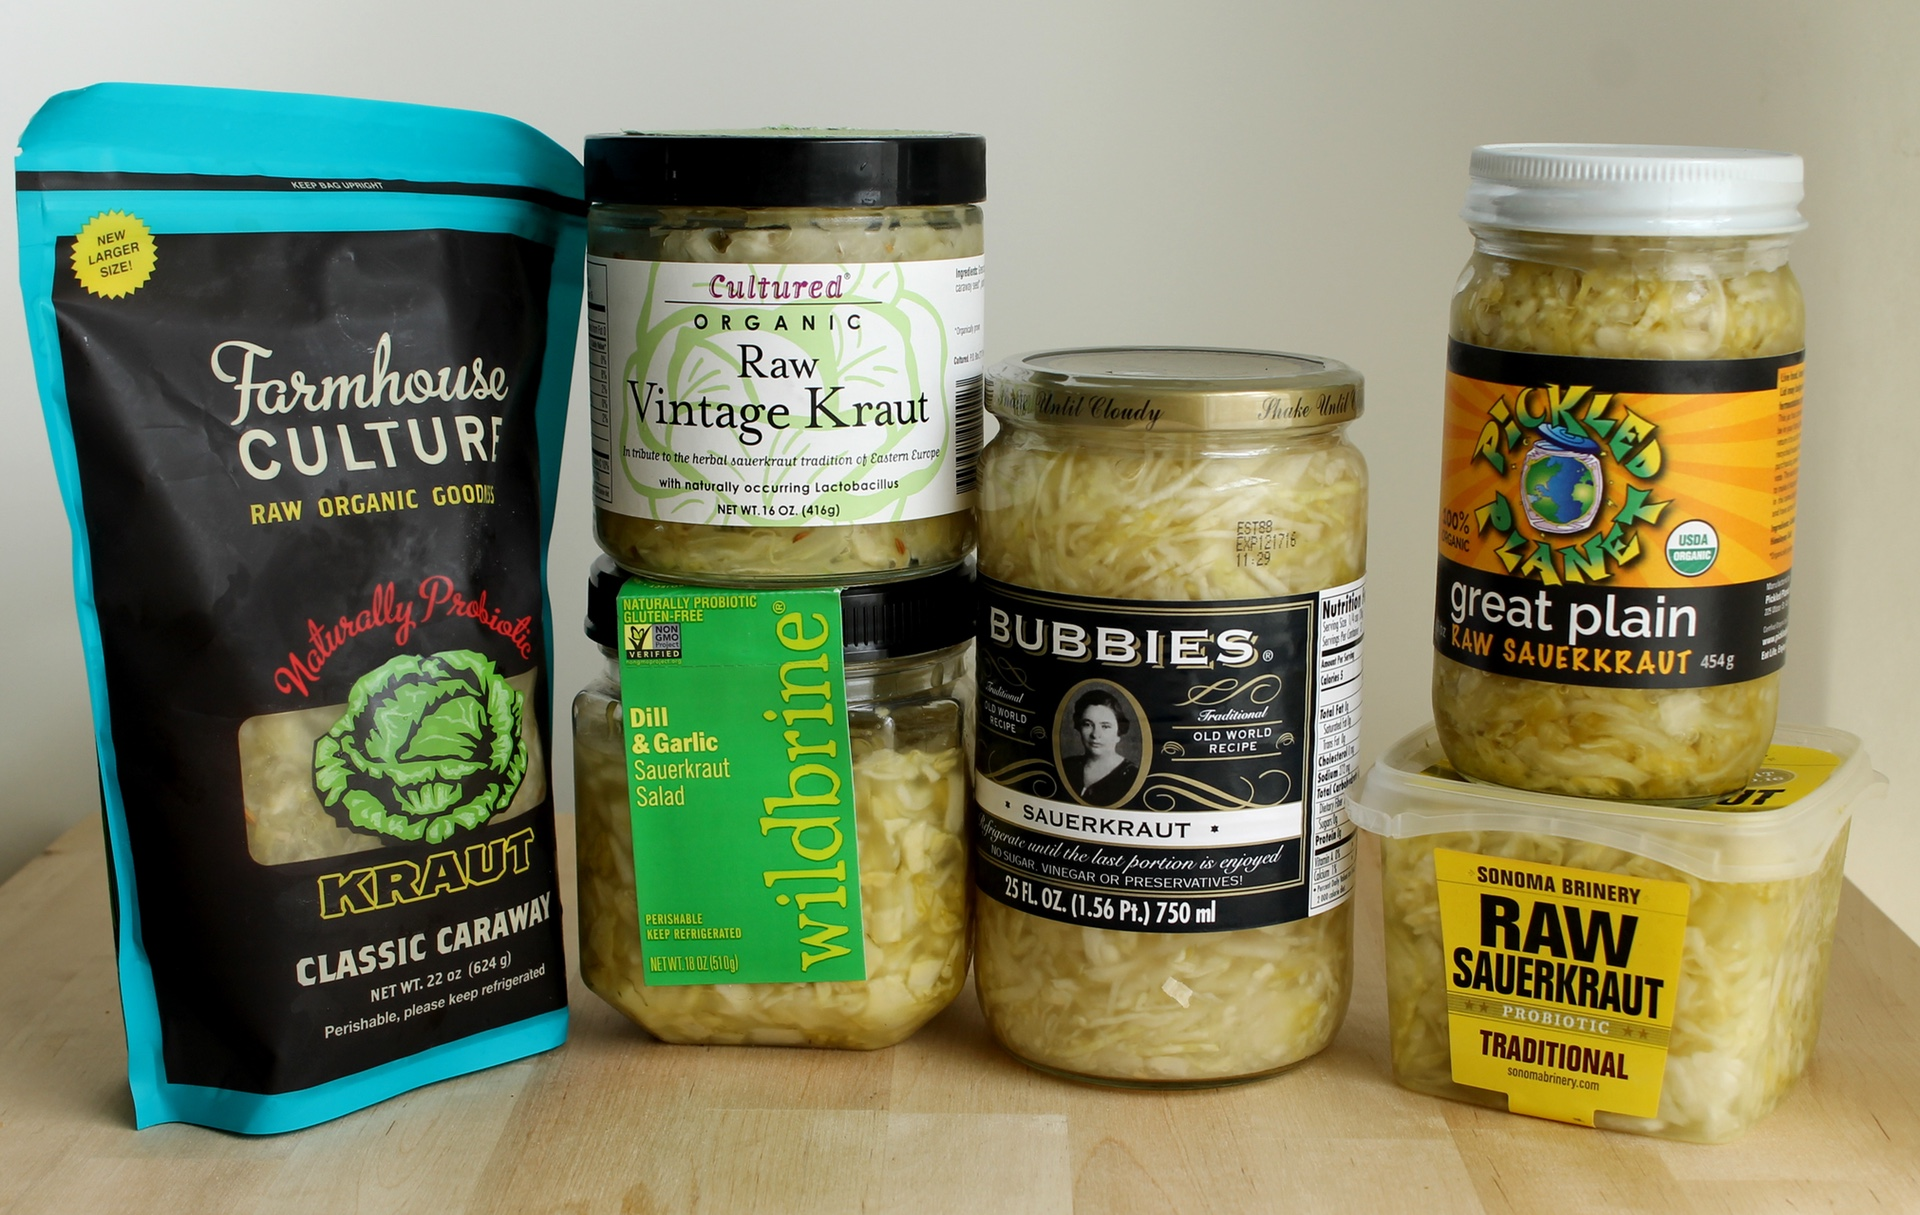 Six varieties of raw sauerkraut are widely available in the Bay Area.